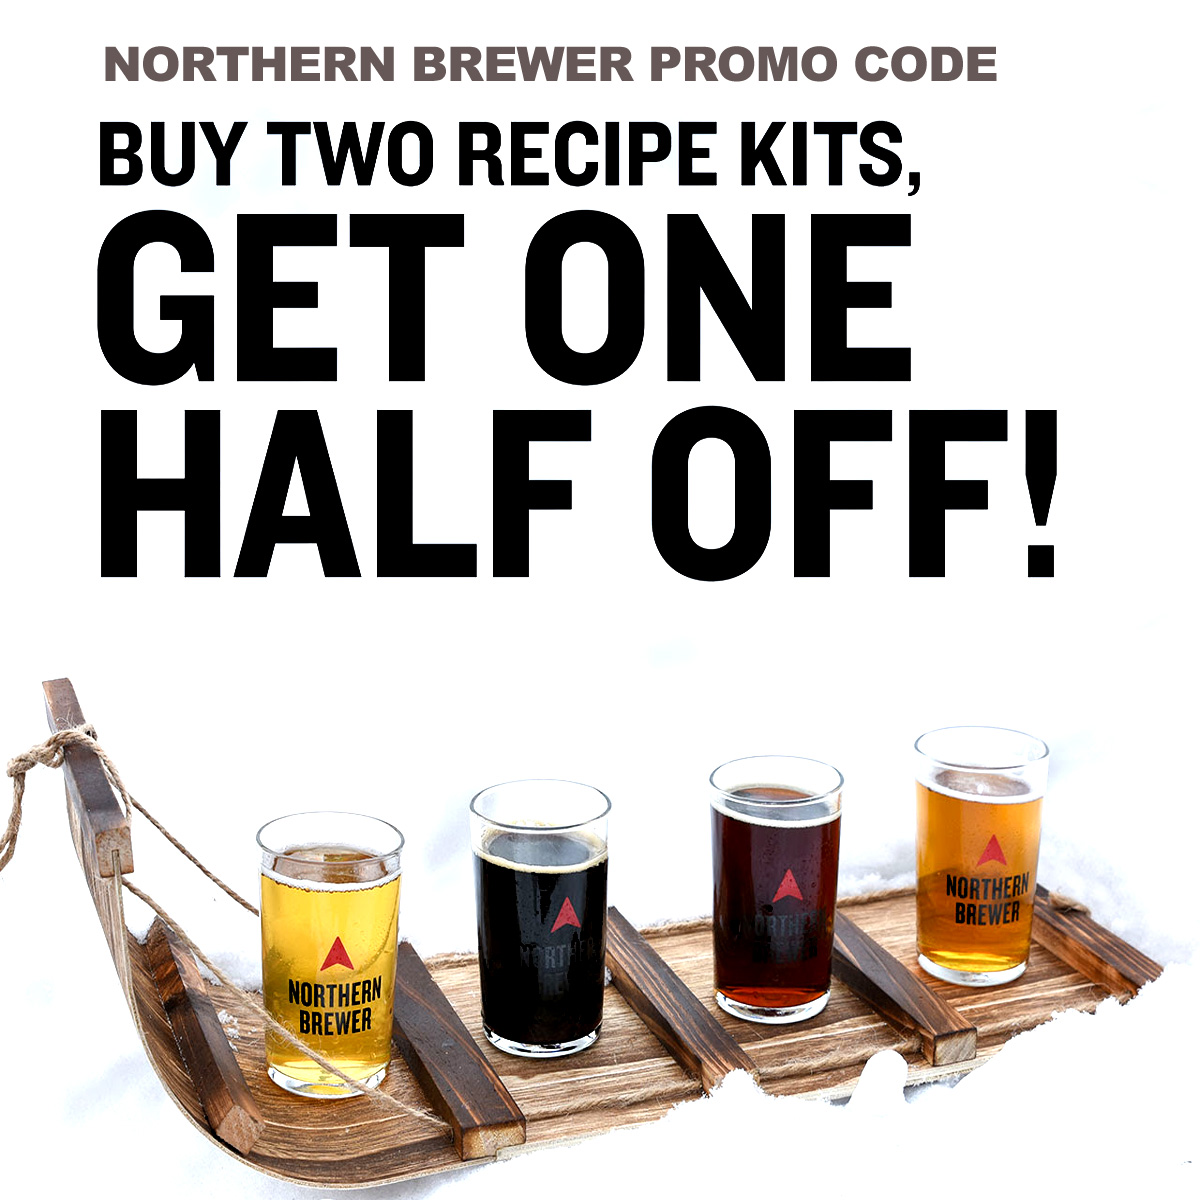 Northern Brewer Buy two recipe kits from the Northern Brewer Winter Sale Selection and get one half off With NorthernBrewer.com Promo code Noel. Coupon Code